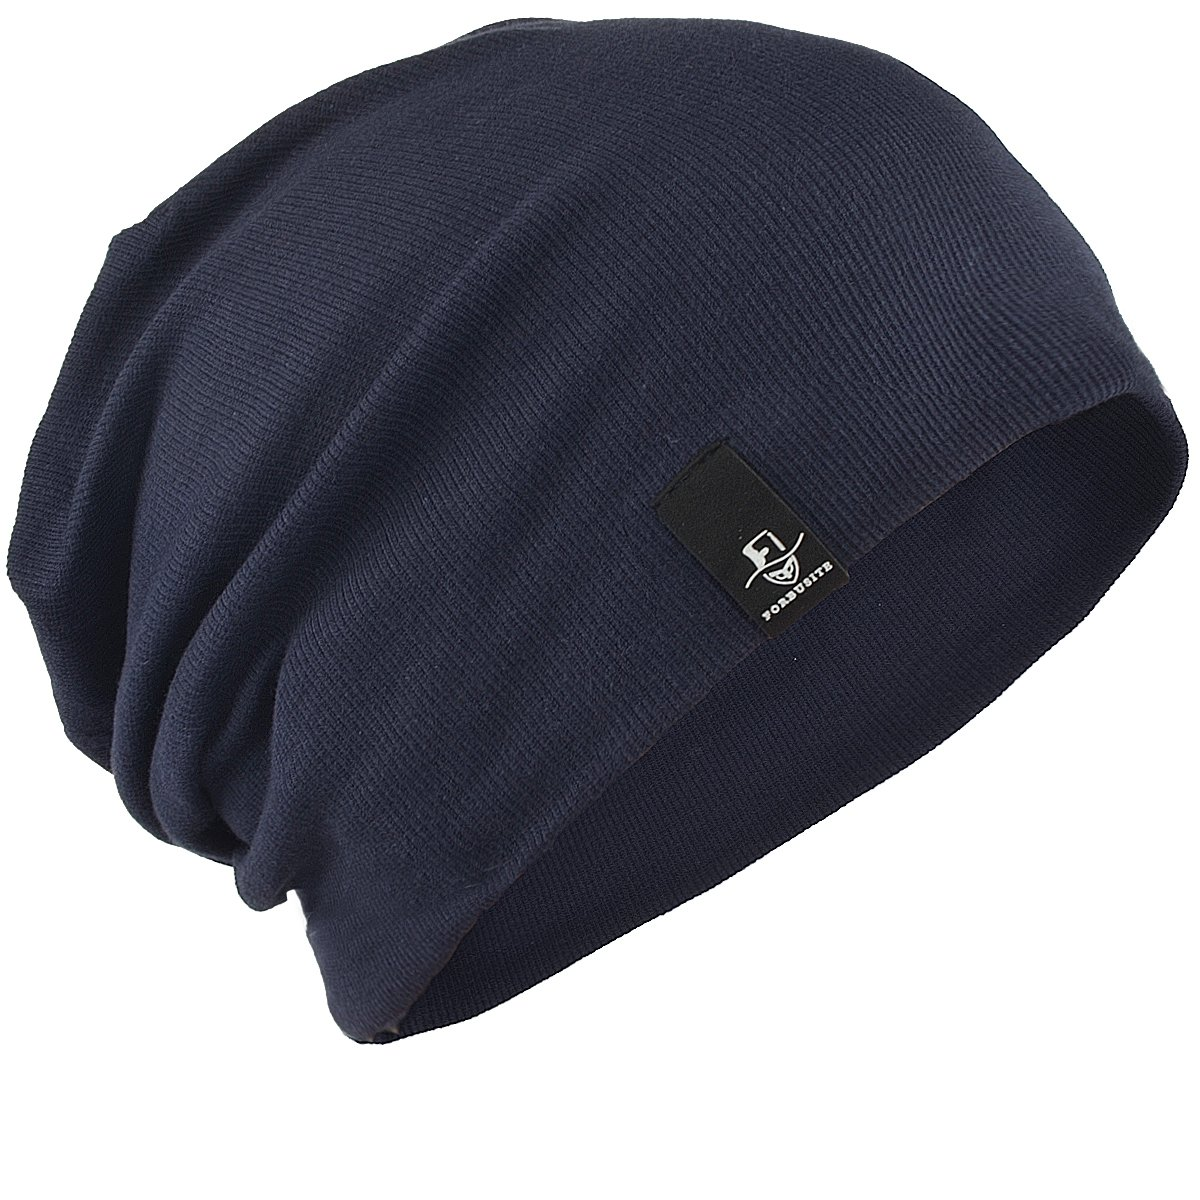 FORBUSITE Mens Cotton Summer Slouchy Beanie Cap Oversized B082-4 (Navy Blue)